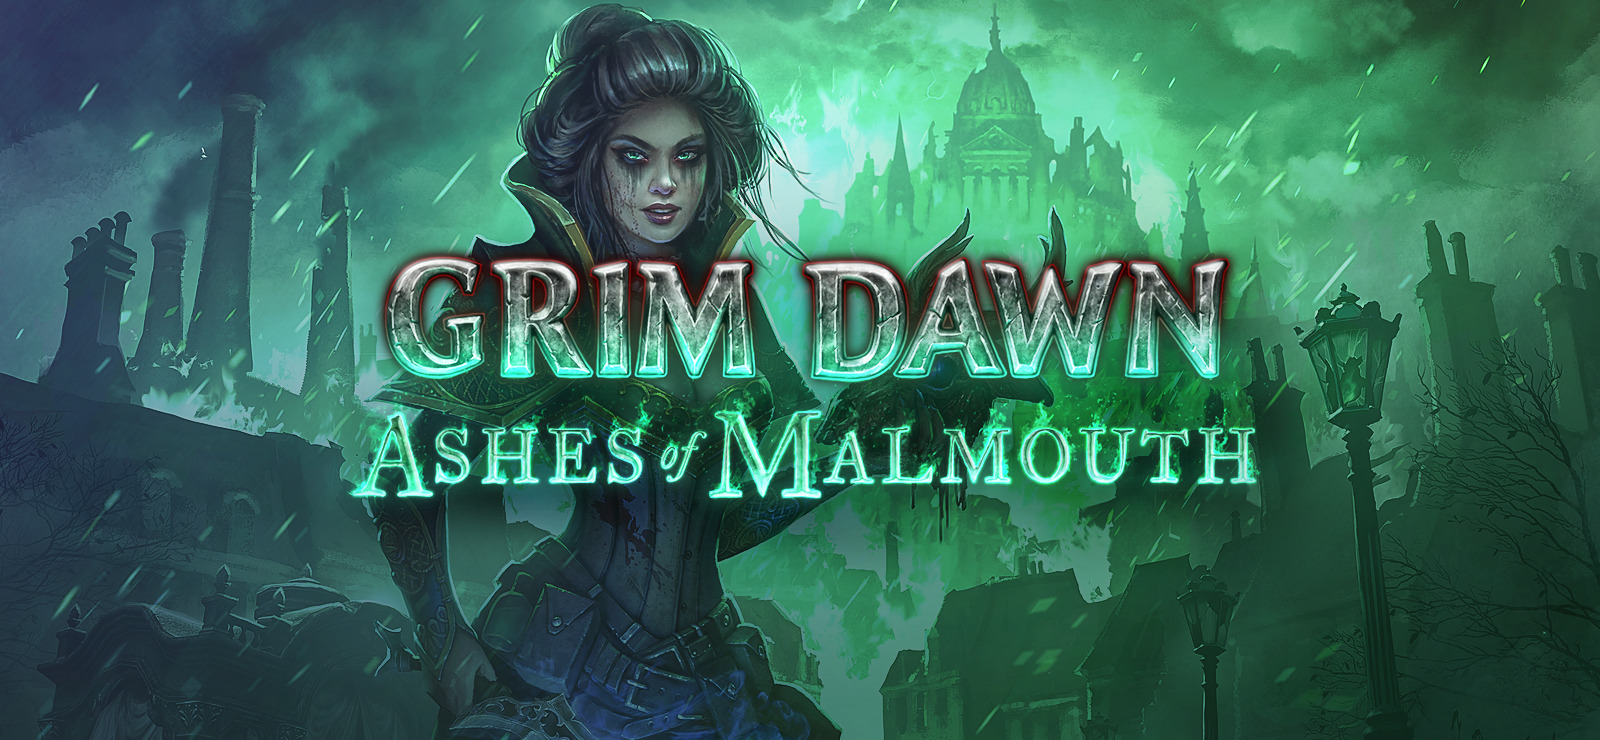 Grim dawn ashes of malmouth guide